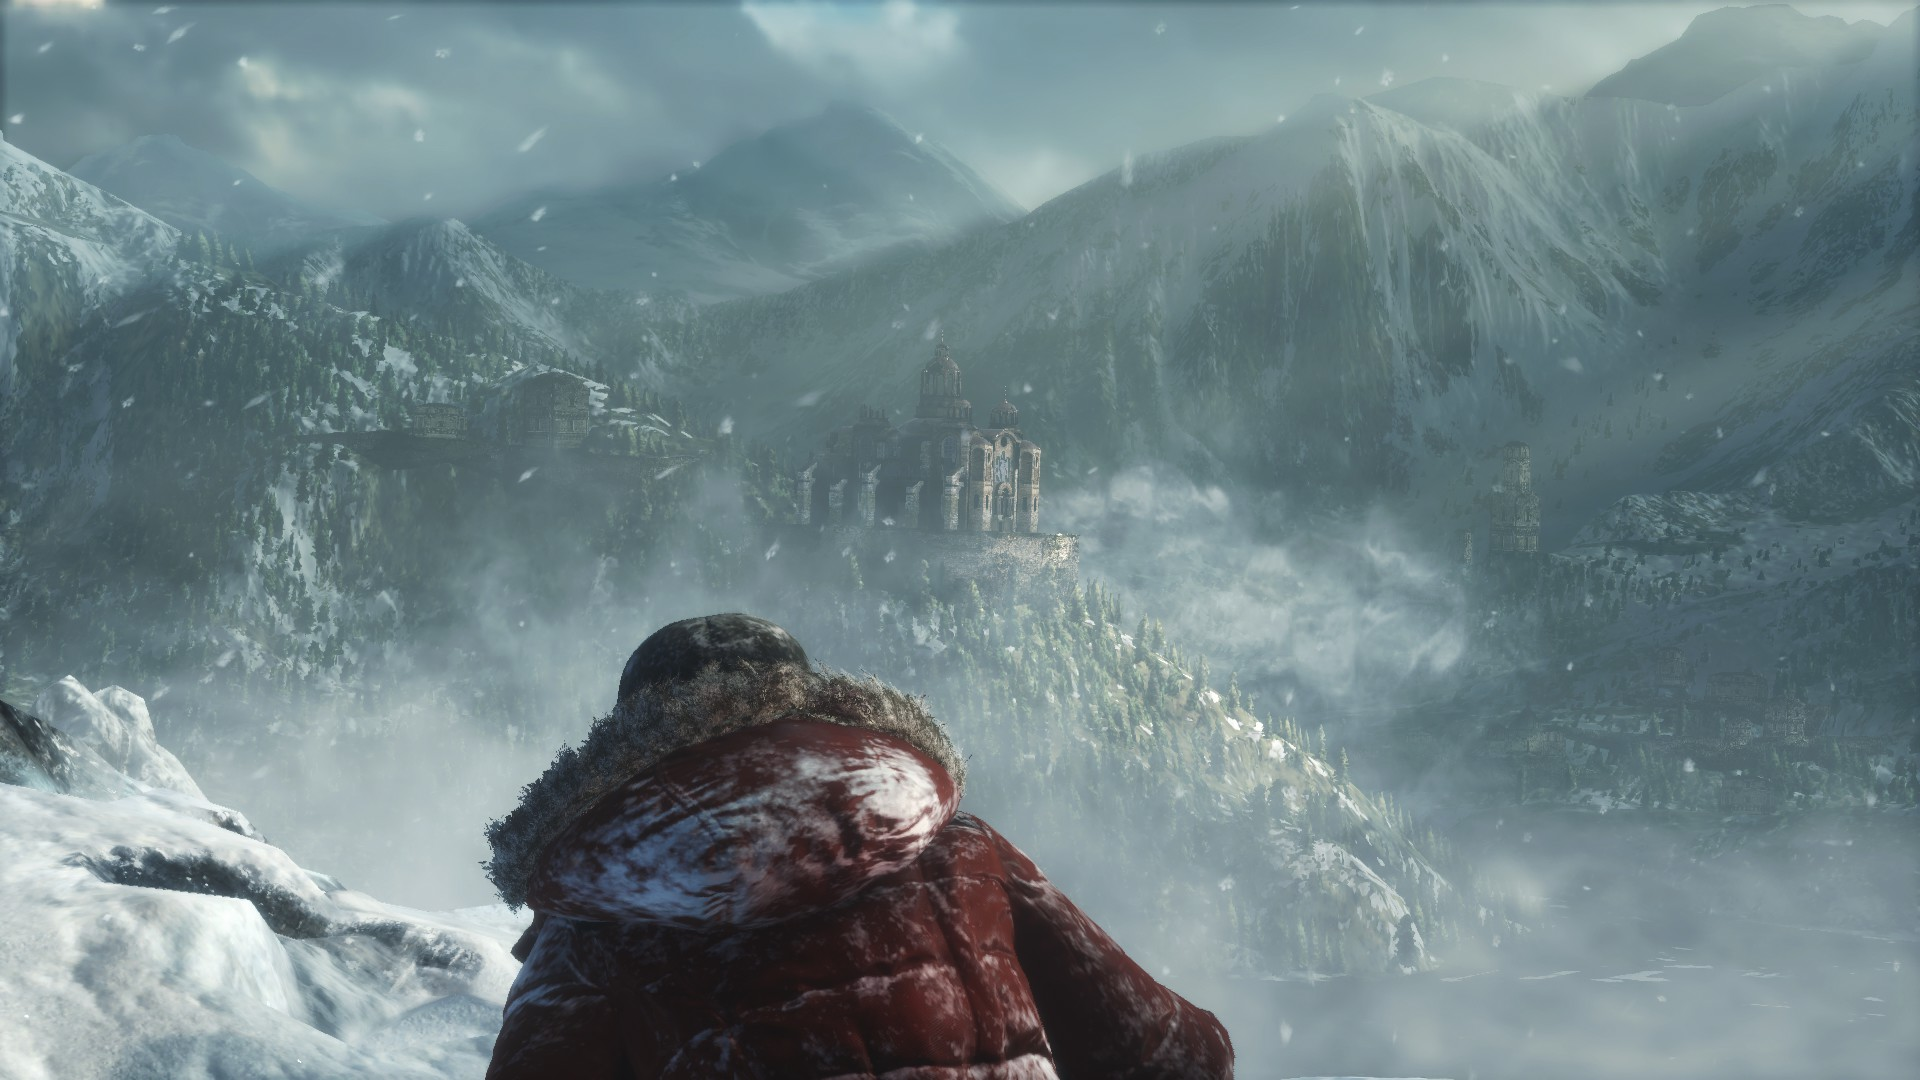 20171203195308_1.jpg - Rise of the Tomb Raider